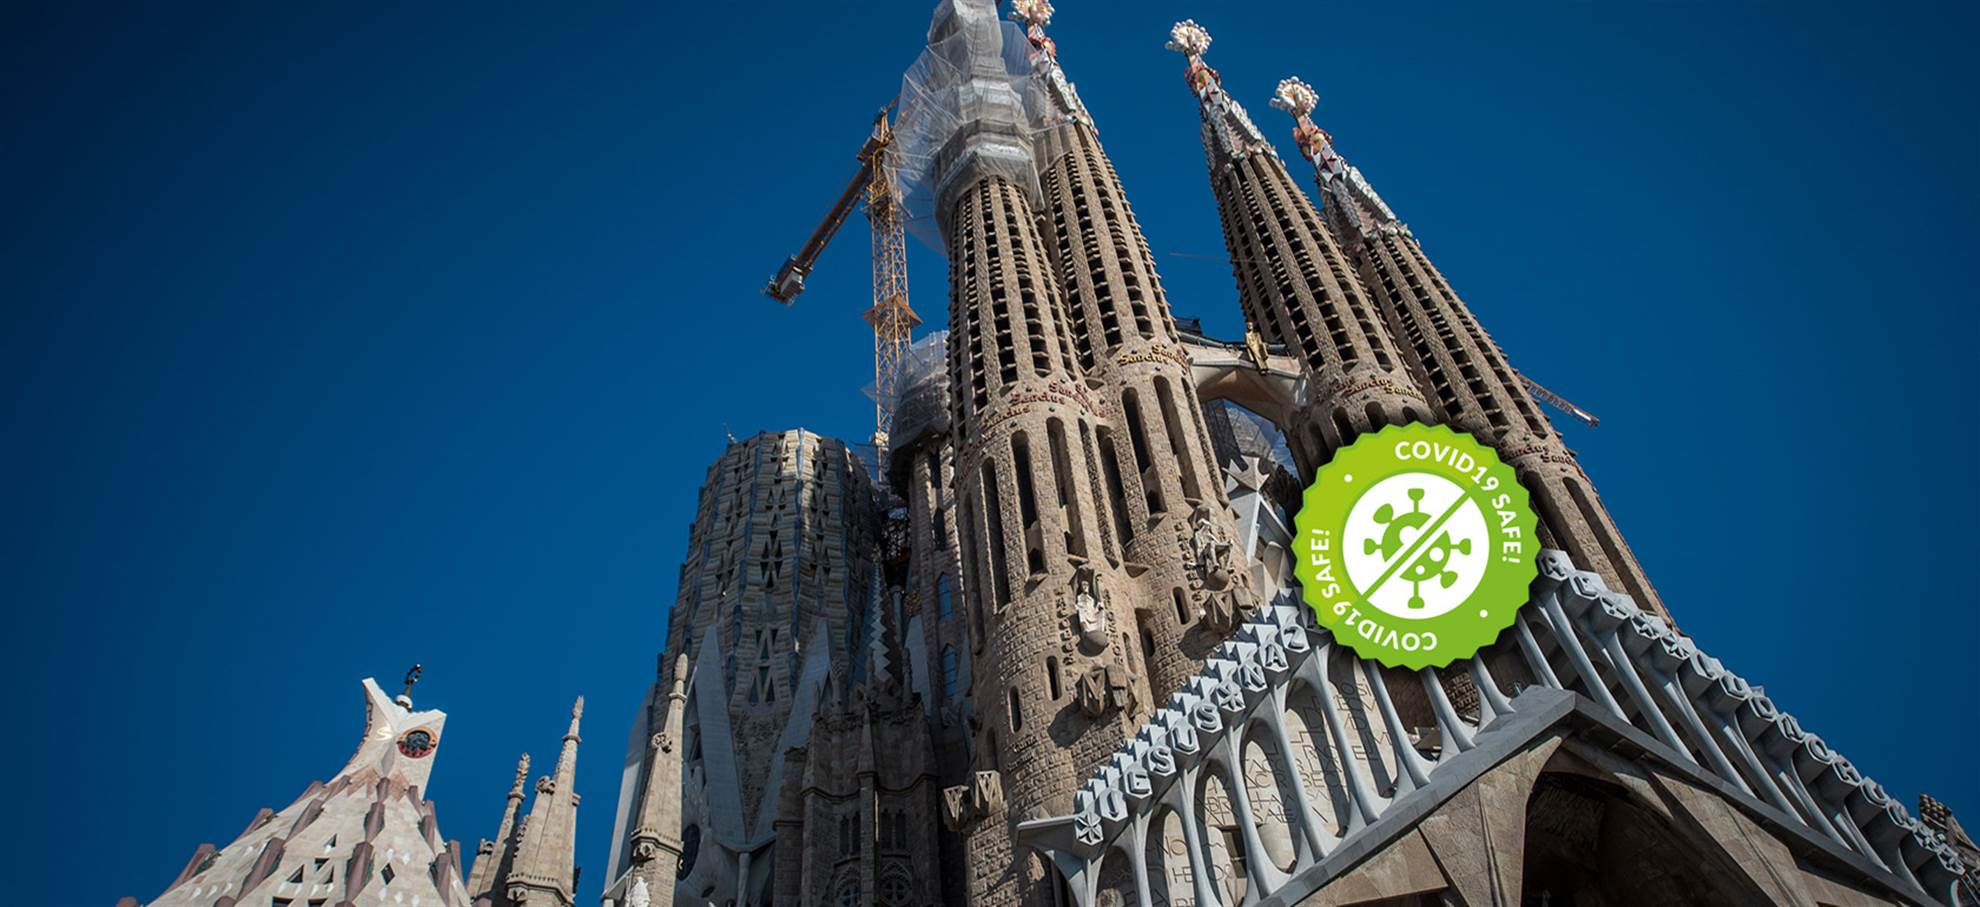 La Sagrada Familia 'The Facades Tour'